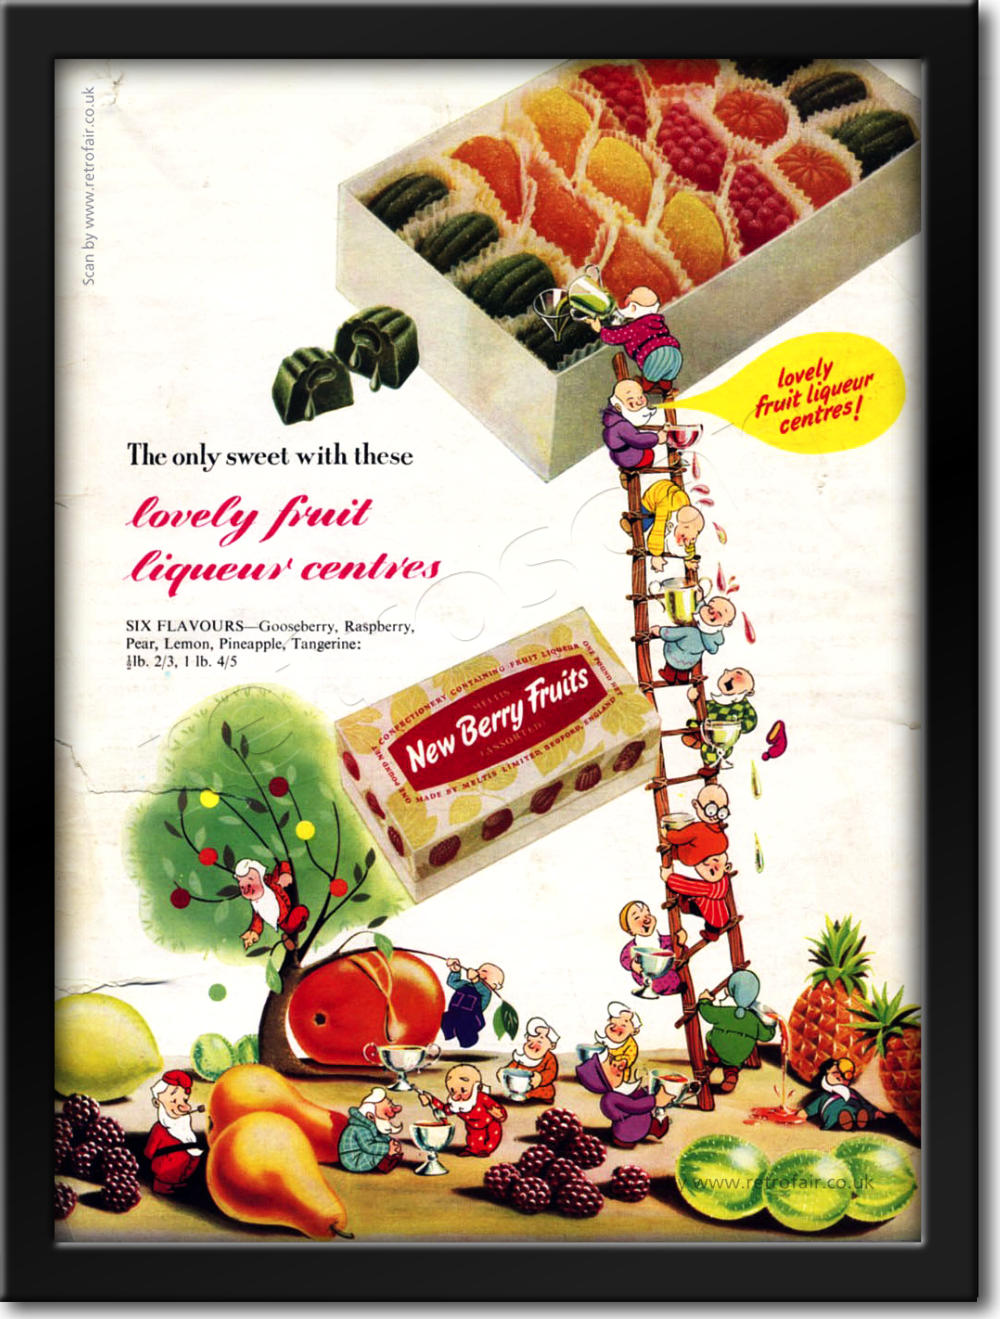 vintage 1952 New Berry Fruits